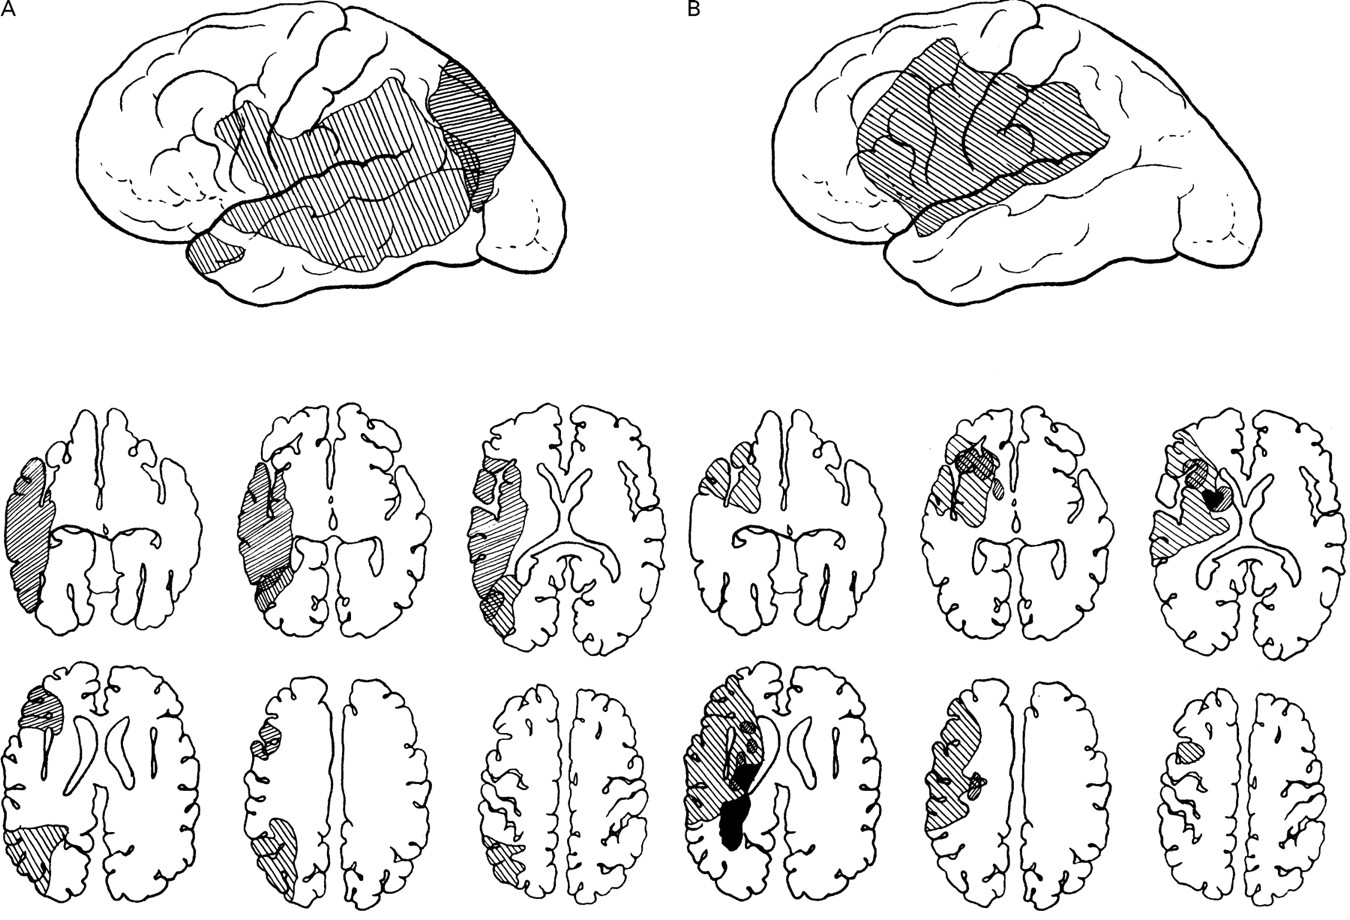 Dissociation of sensory-attentional from motor-intentional